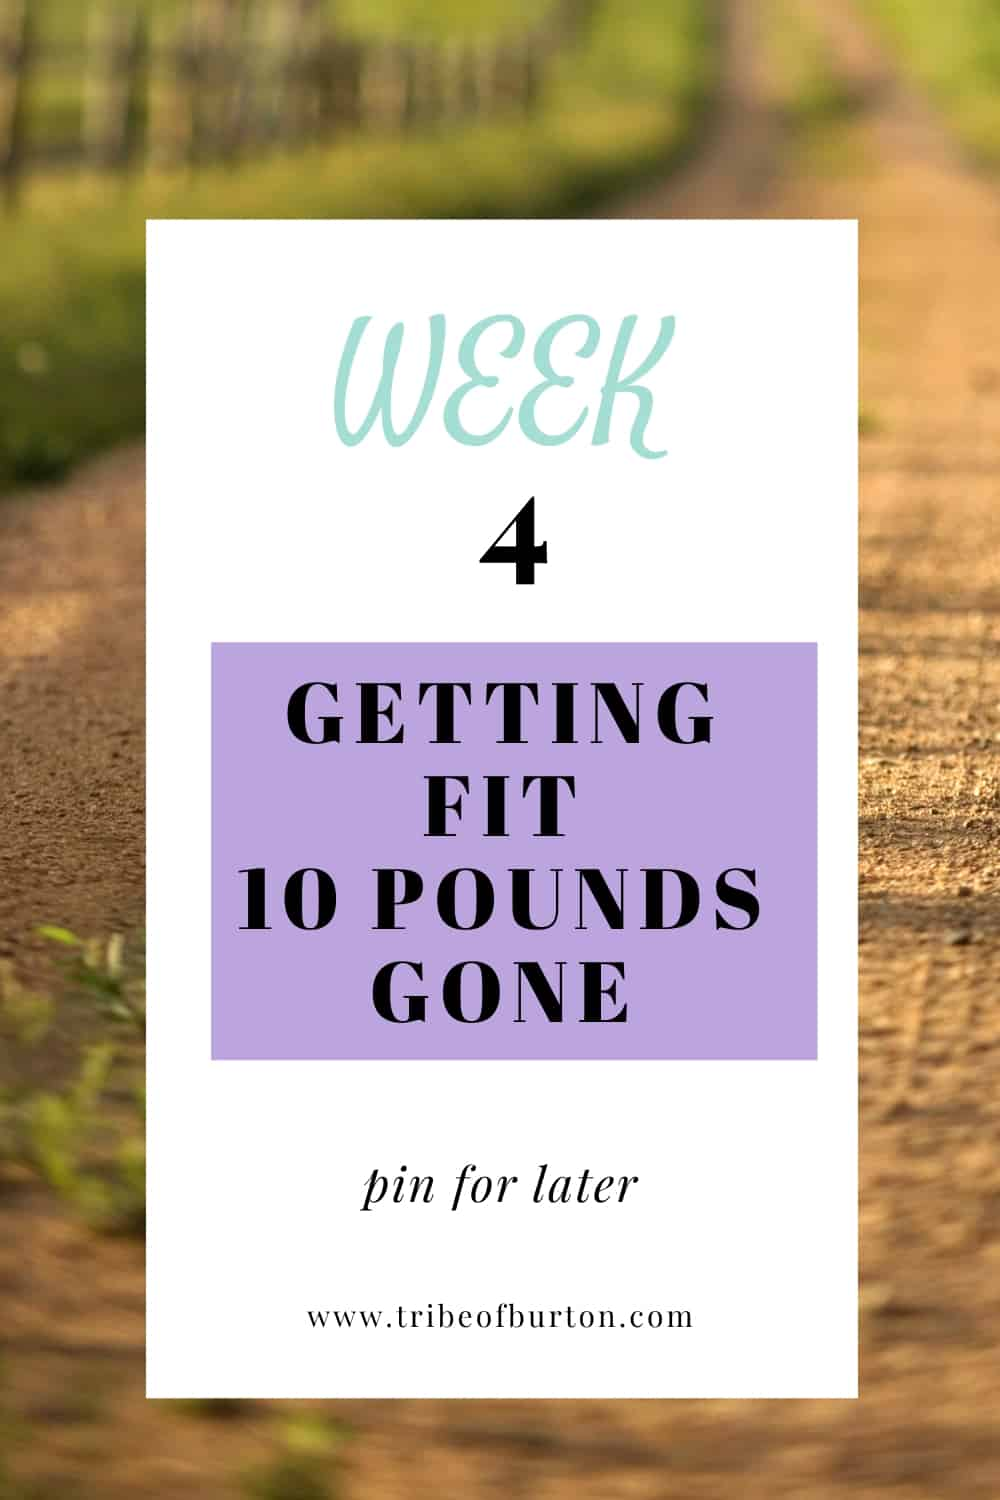 Week 4 pinterest pin lost 10 pounds